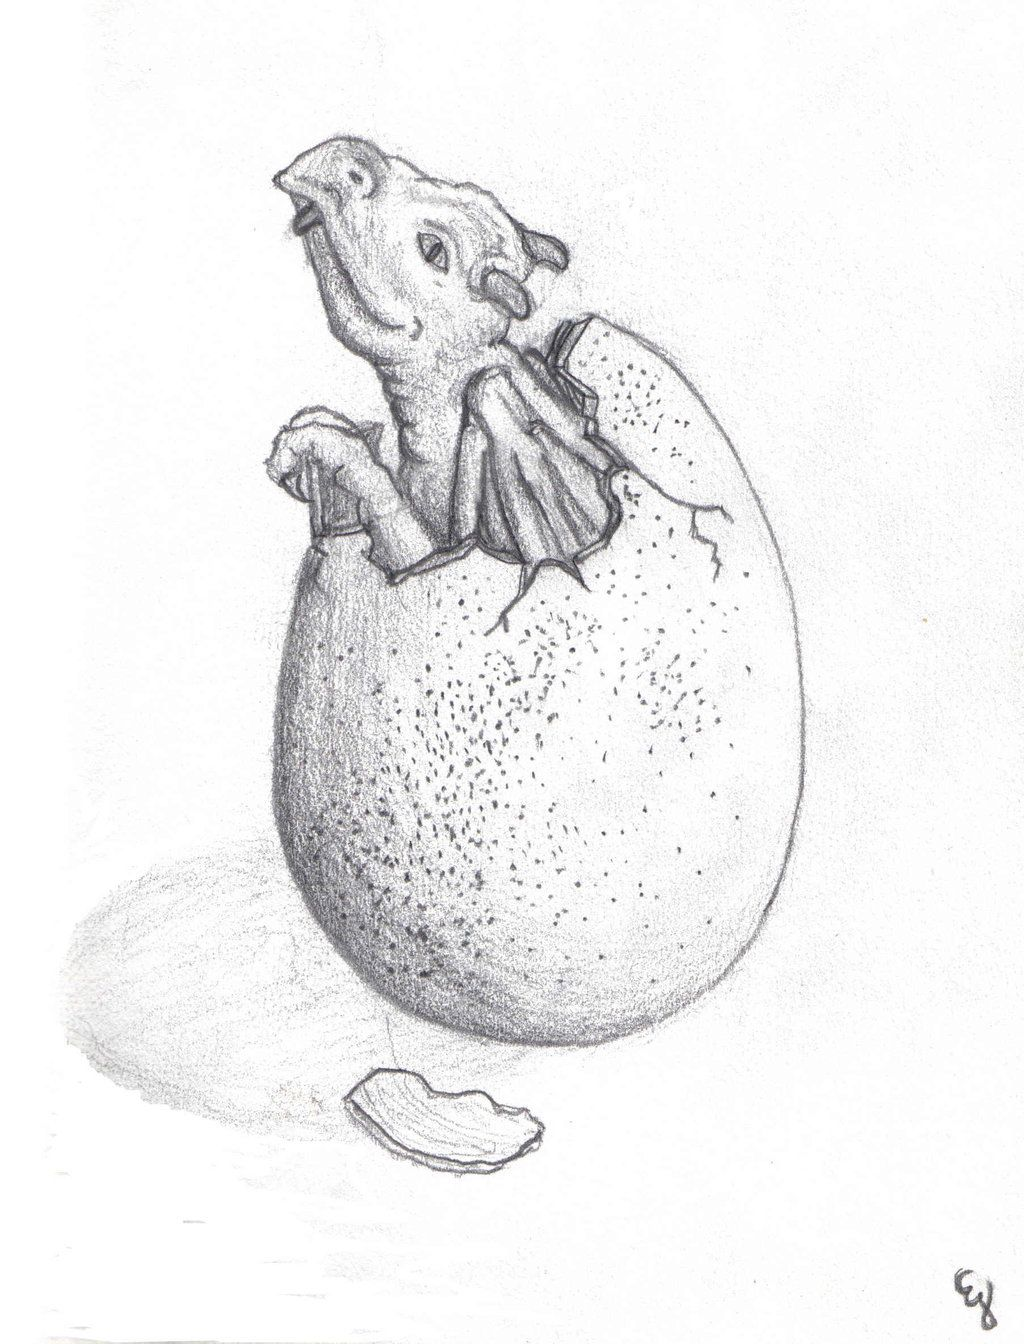 How To Draw A Baby Dragon In A Egg : dragon, Dragon_hatching_by_EggsAckley.jpg, (1024×1344), Dragon, Sketch,, Dragons, Drawing,, Drawing